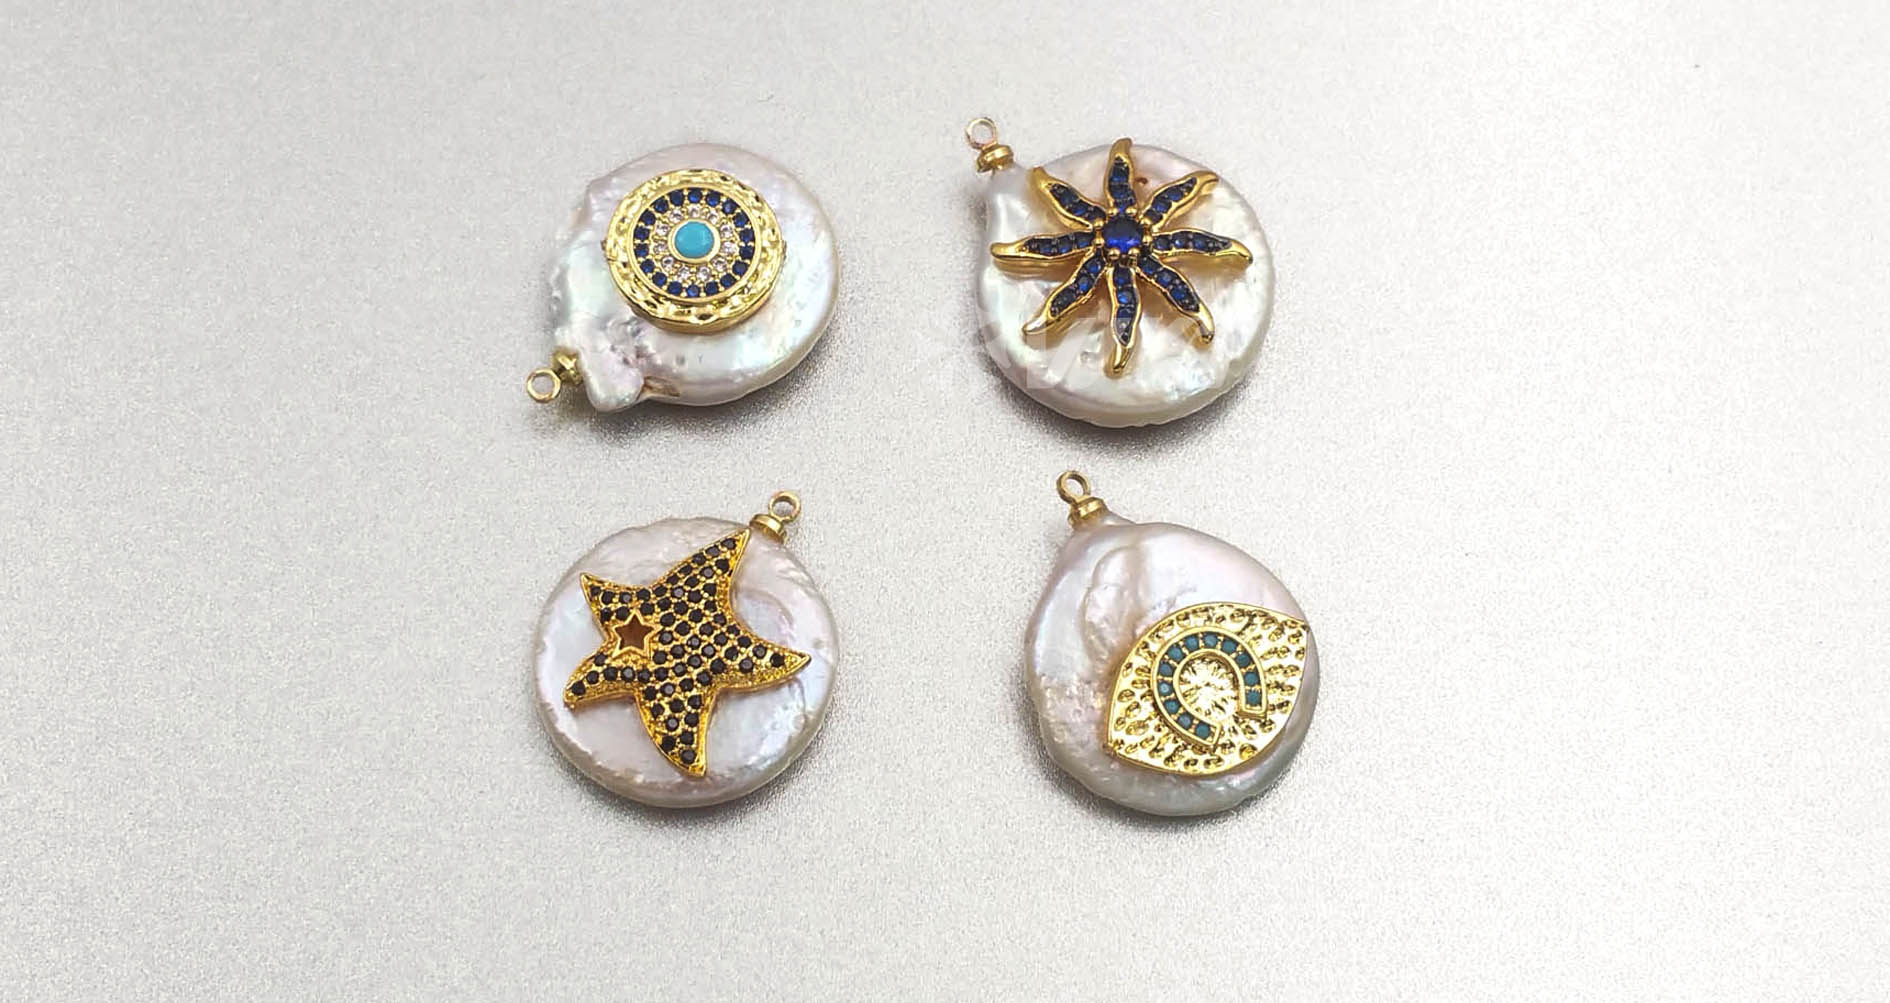 MP131 wholesale populared starfish multi-pattern pearl with cz micro pave pendant women fashion jewelry circular pearl pendant